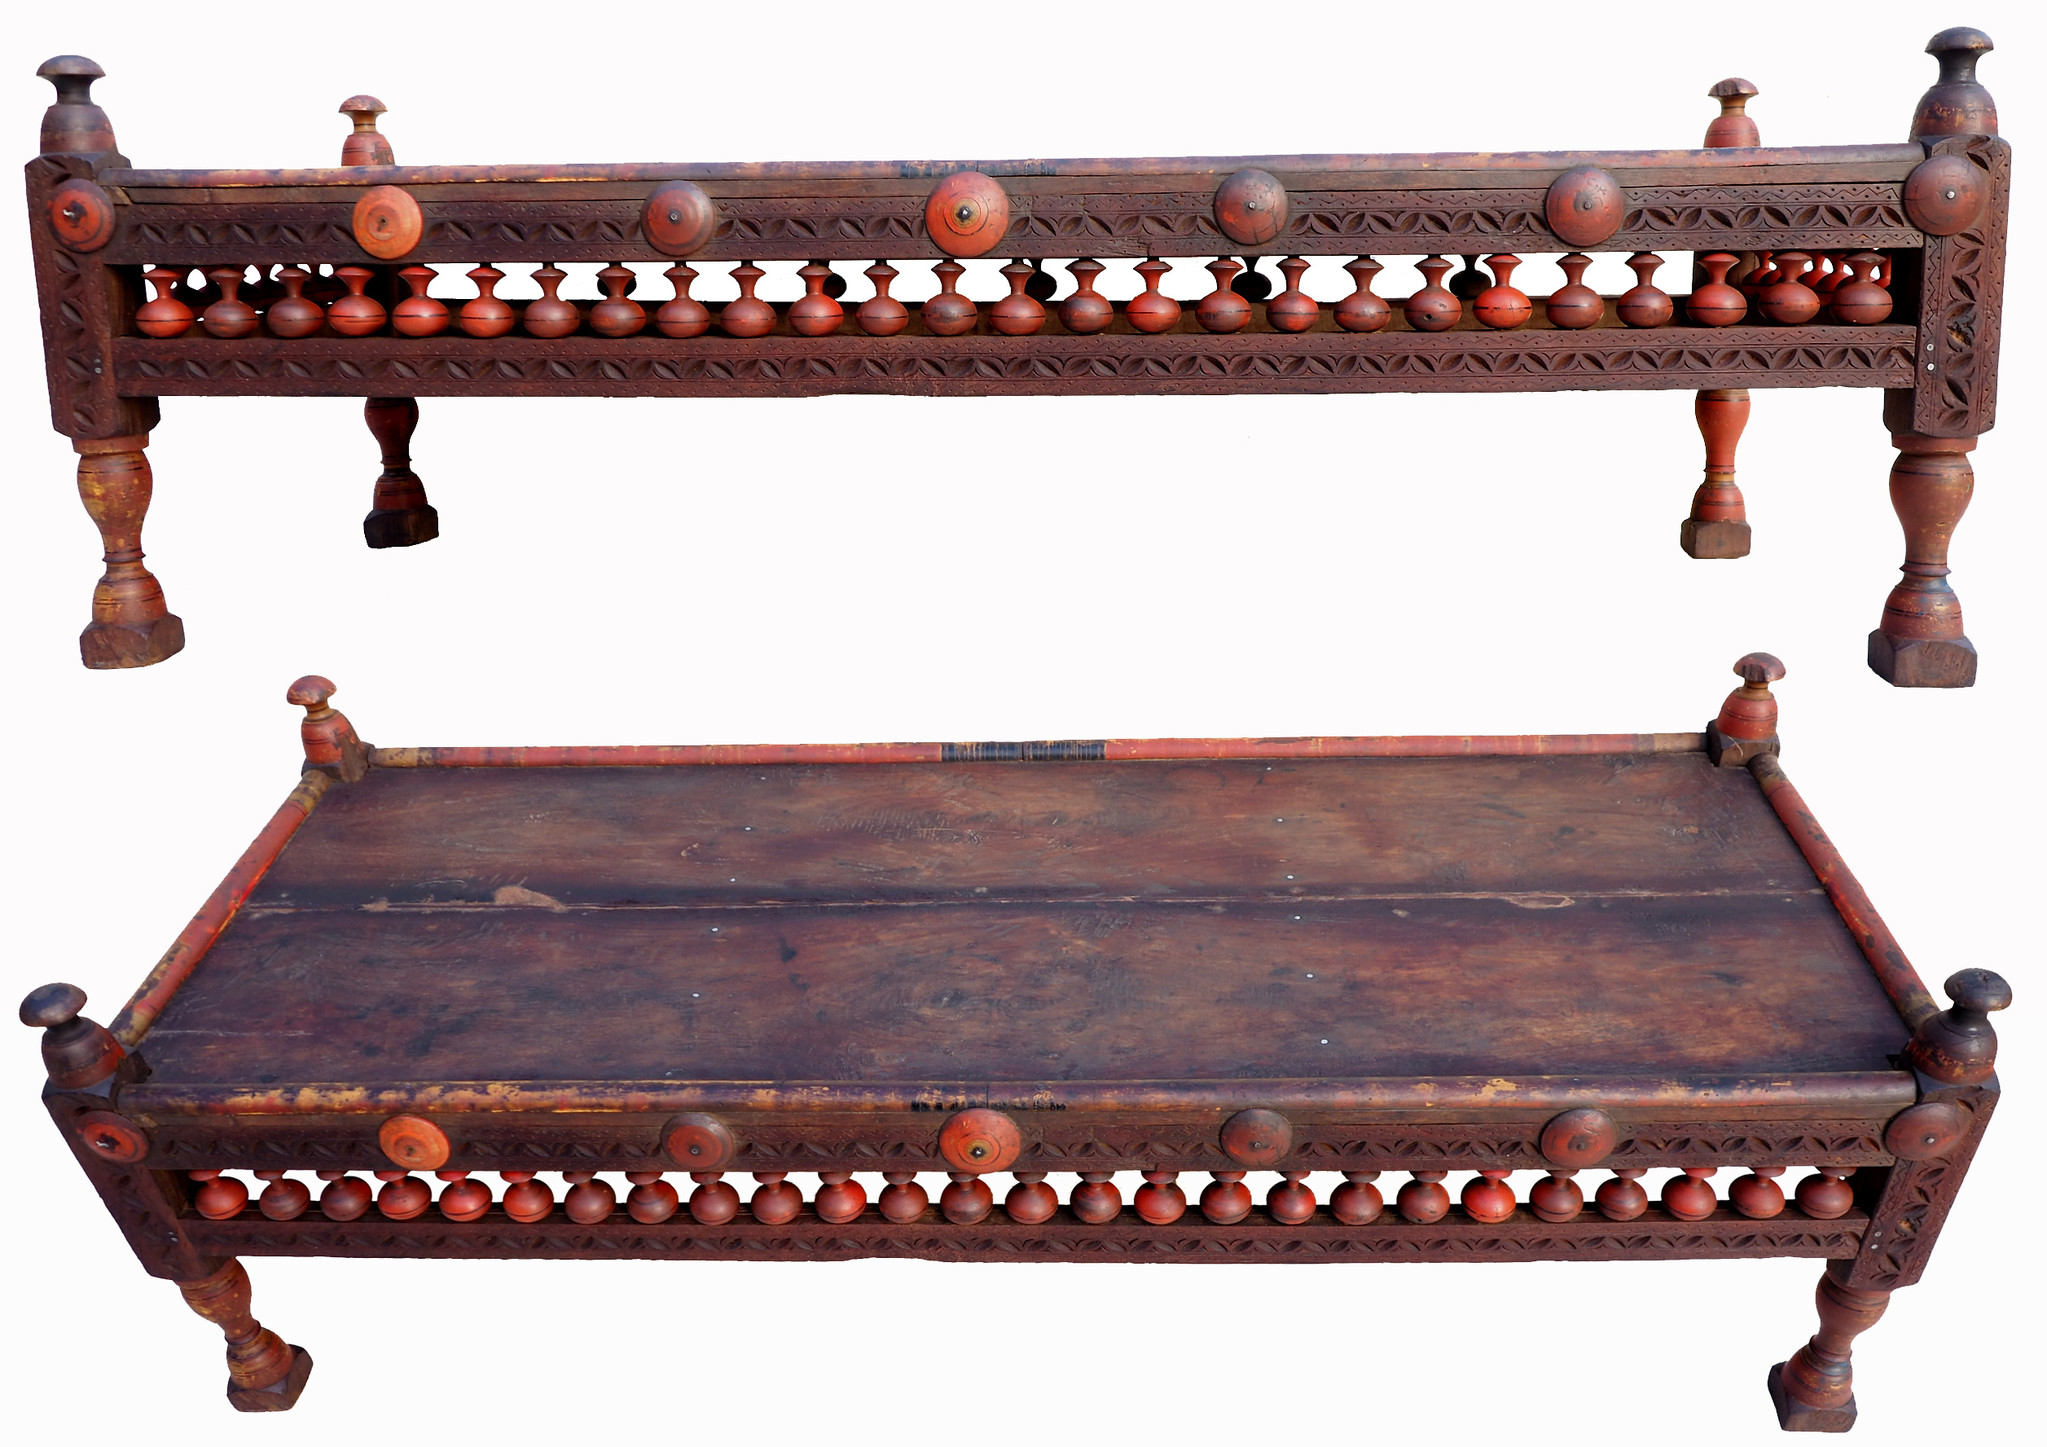 153x60 cm rare Antique solid wood orient tea table sidtable coffee table living room table from Afghanistan Pakistan WL/PJ/E